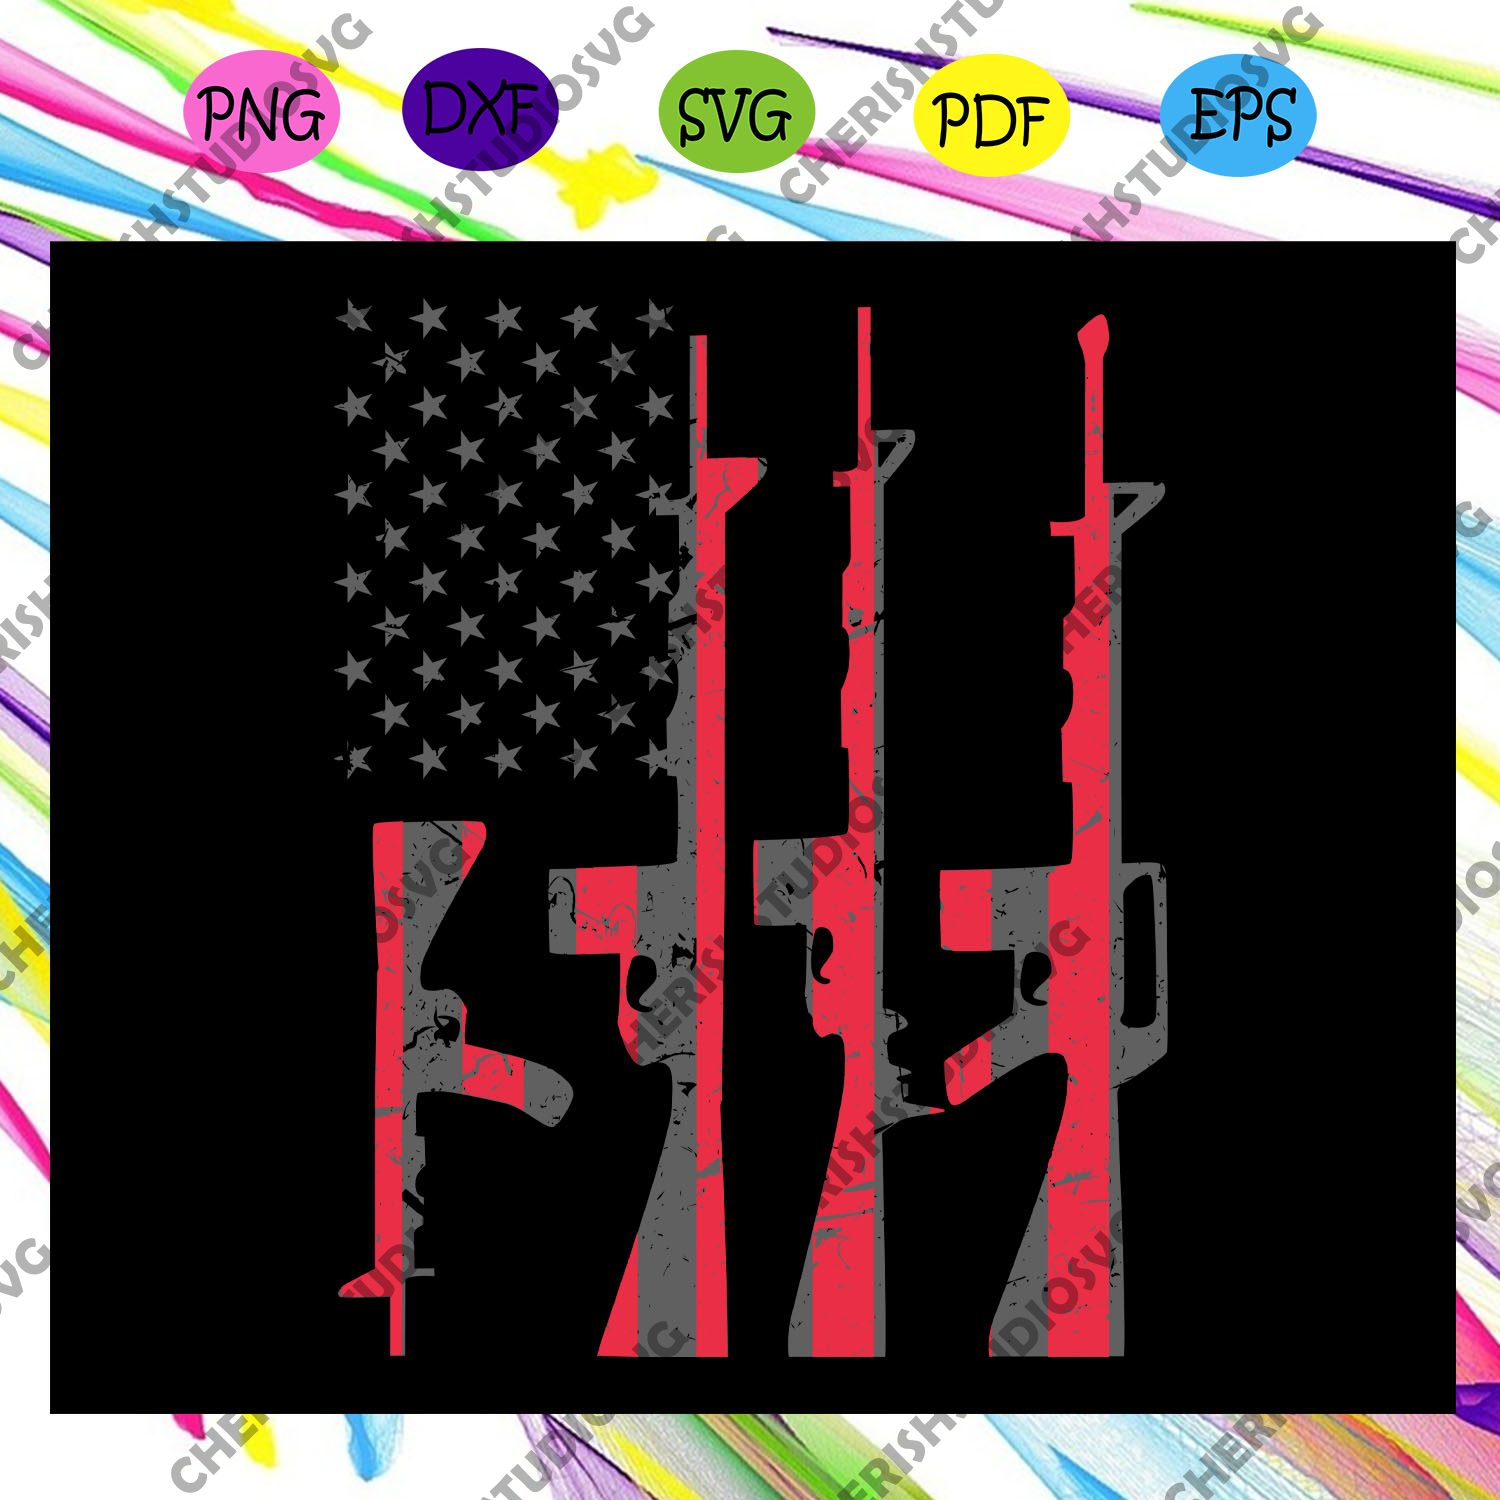 American Gun Flag ,America 4th Of July Patriotic Svg,American Svg, 4th Of July Svg, Fourth Of July Svg, Patriotic American Svg, Independence Day Svg, Files For Silhouette, Files For Cricut, SVG, DXF, EPS, PNG, Instant Download